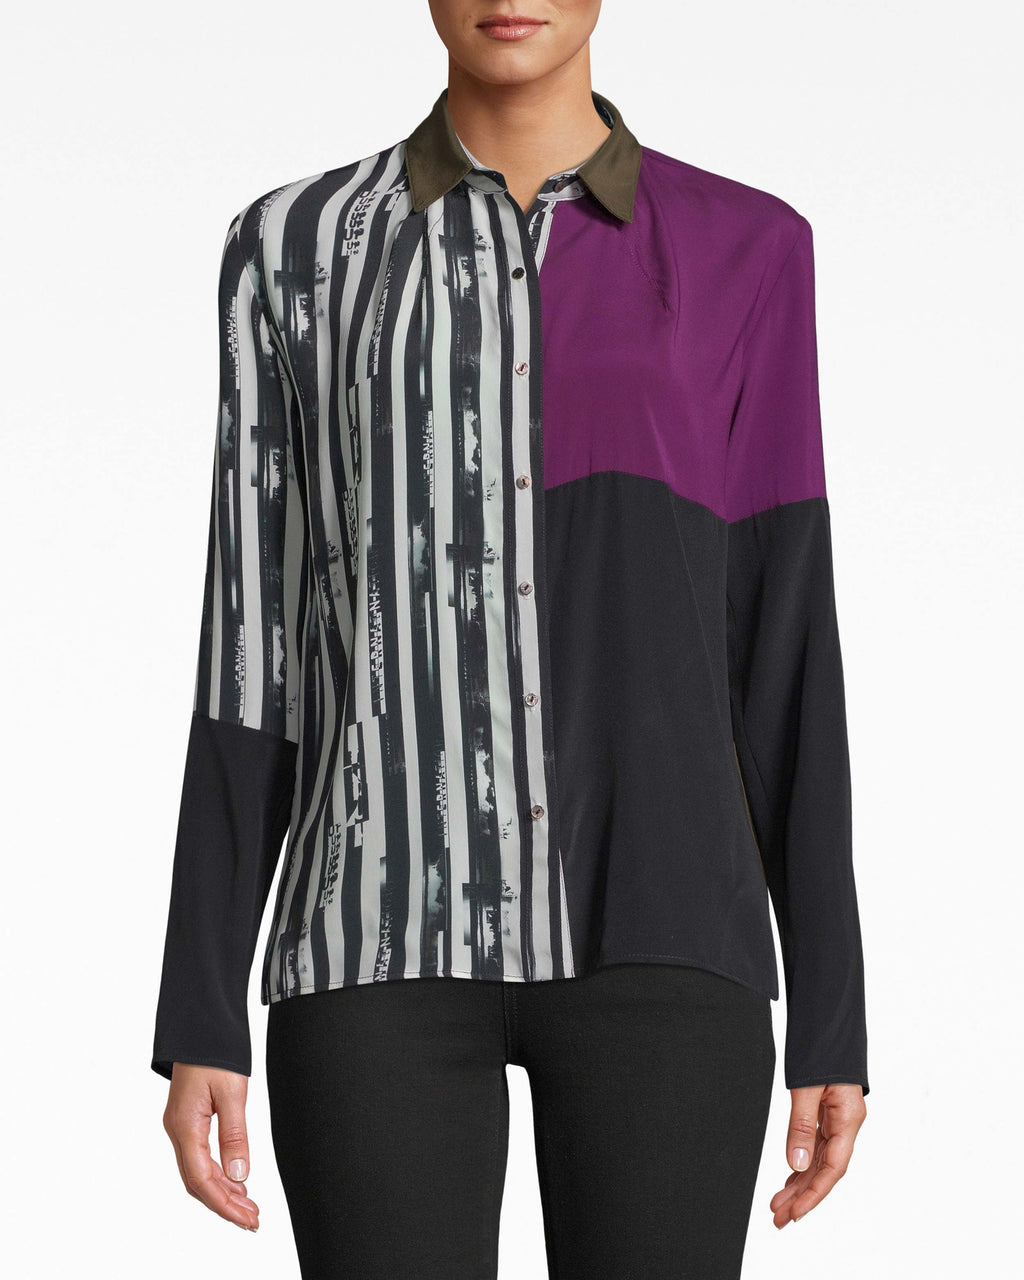 BE10394 - UP AND UP STRIPE BOYFRIEND BLOUSE - tops - blouses - Up and away. Contrasting prints make the best of both world on this chic boyfriend blouse. Pair back with simple bottoms.